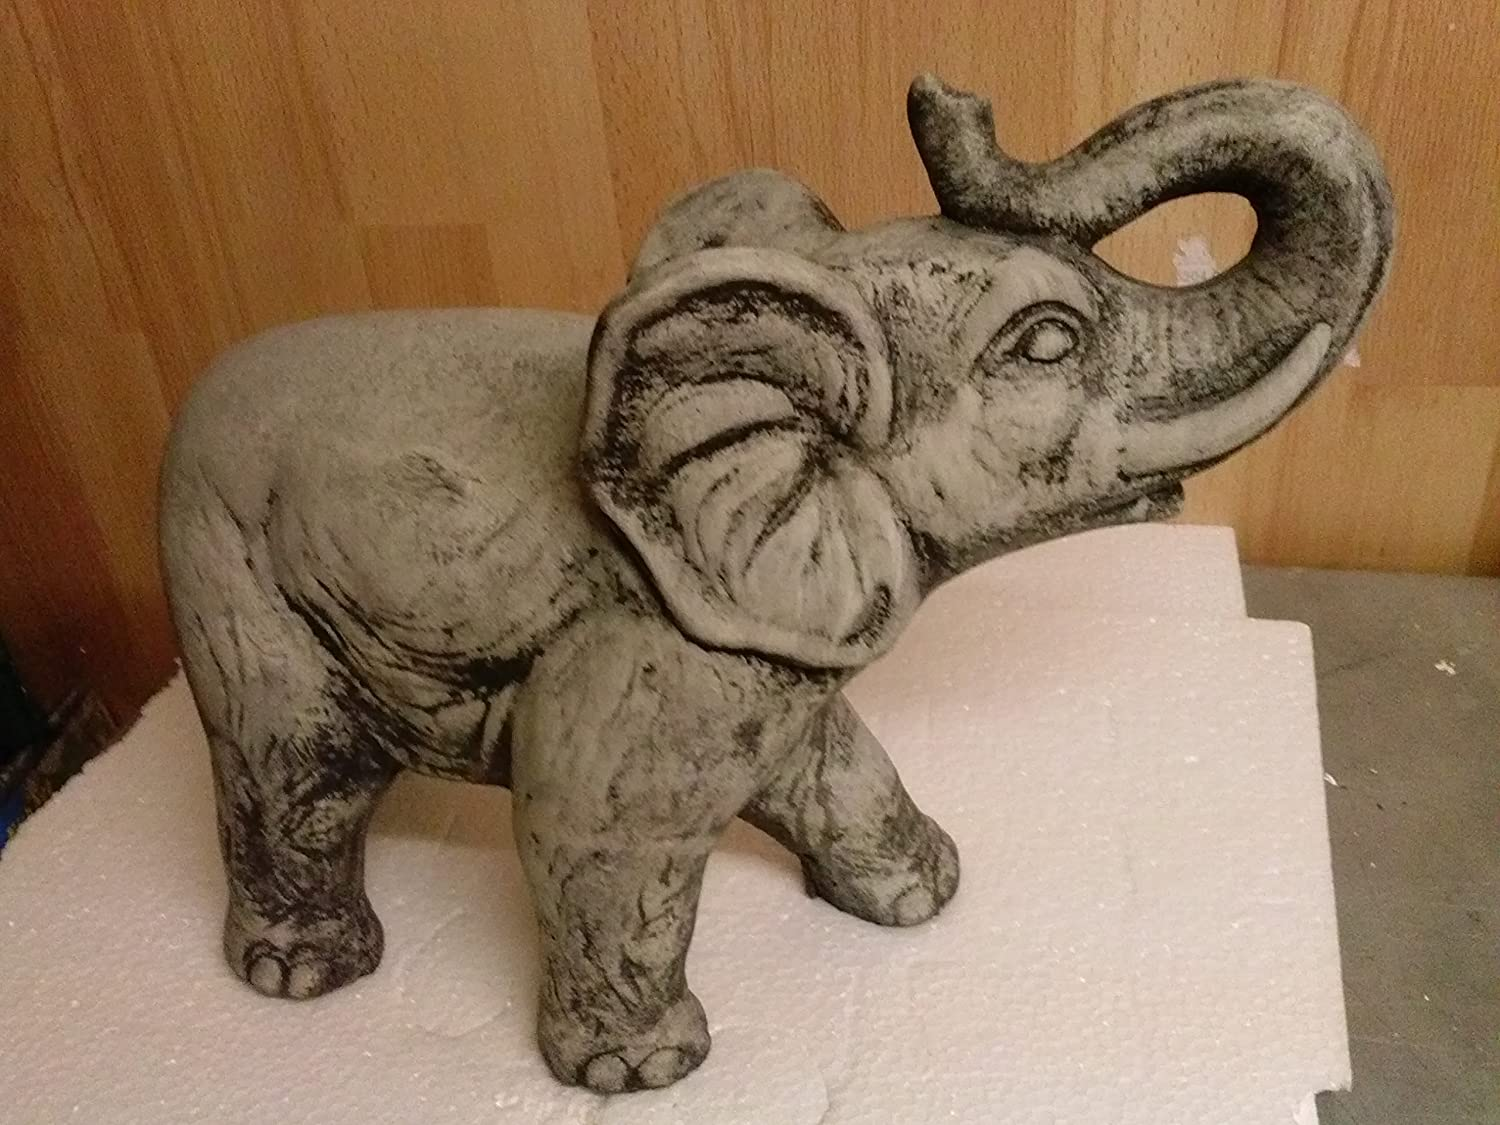 Stone Elephant Dumbo Elephant Statue Garden Animal Ornament Decorative  Sculpture Painted Heavy Weight: Amazon.co.uk: Garden U0026 Outdoors